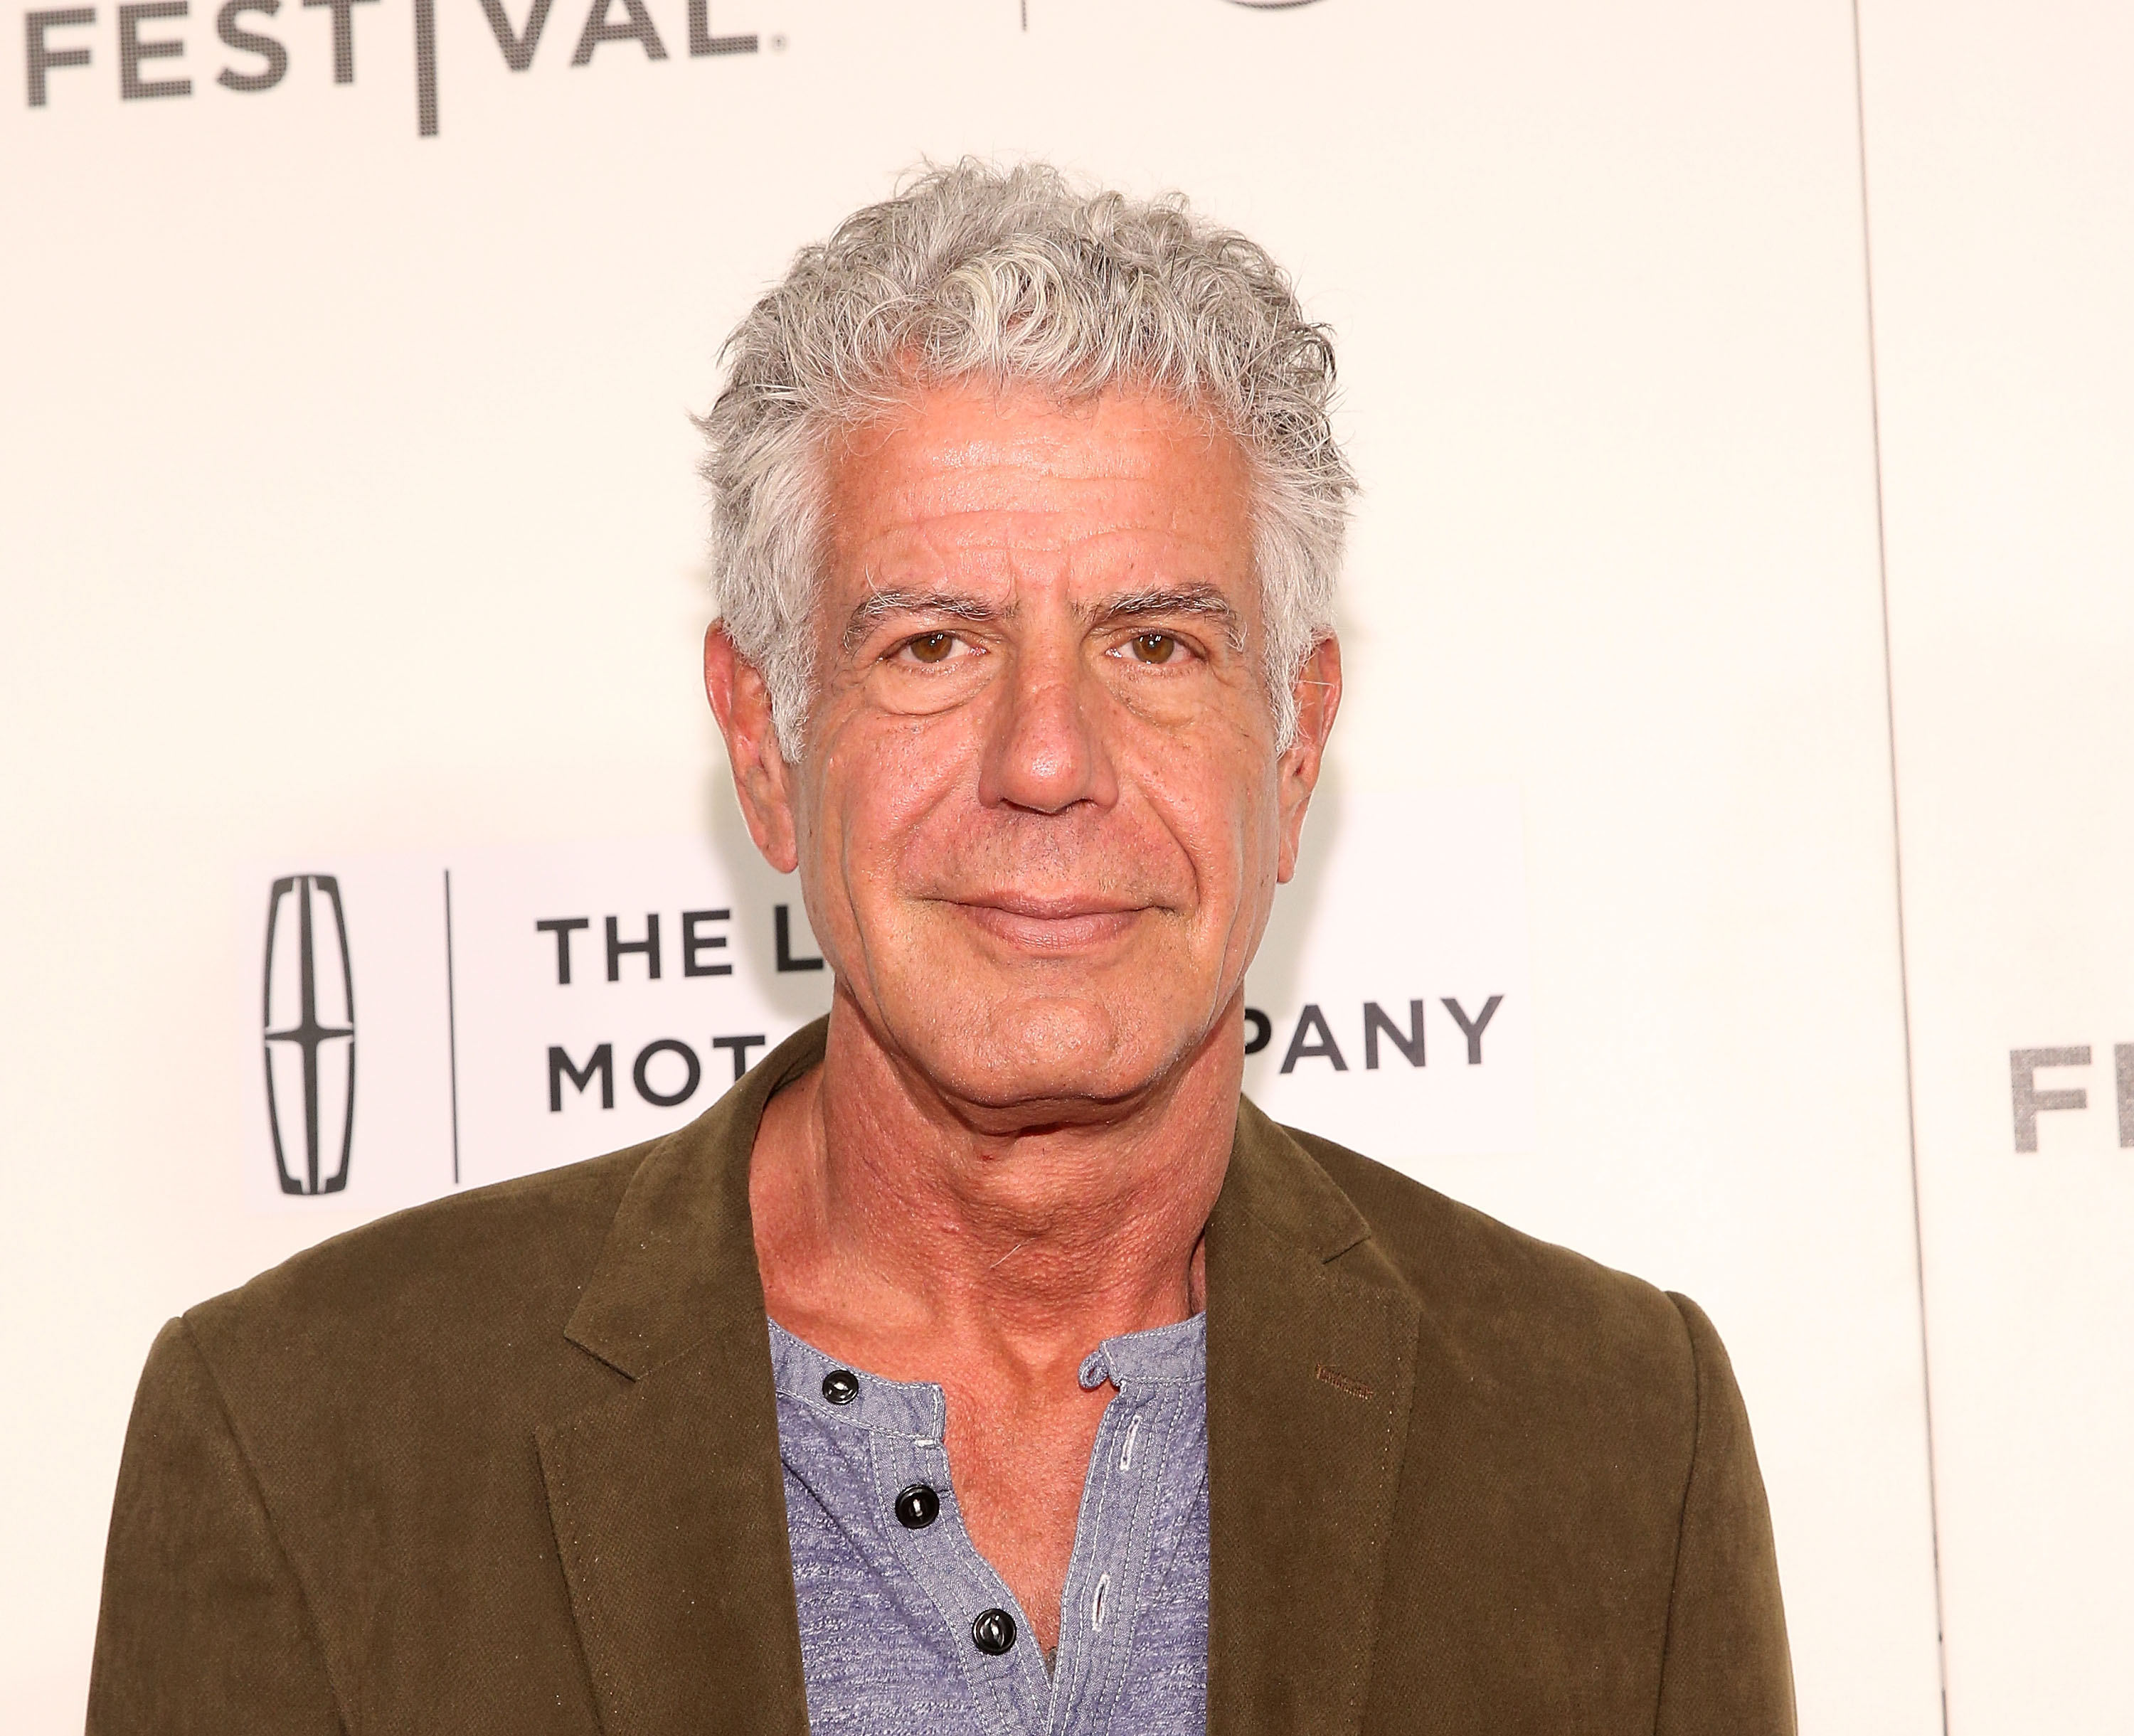 Anthony Bourdain attends 'WASTED! The Story of Food Waste' Premiere during 2017 Tribeca Film Festival at BMCC Tribeca PAC on April 22, 2017 in New York City.